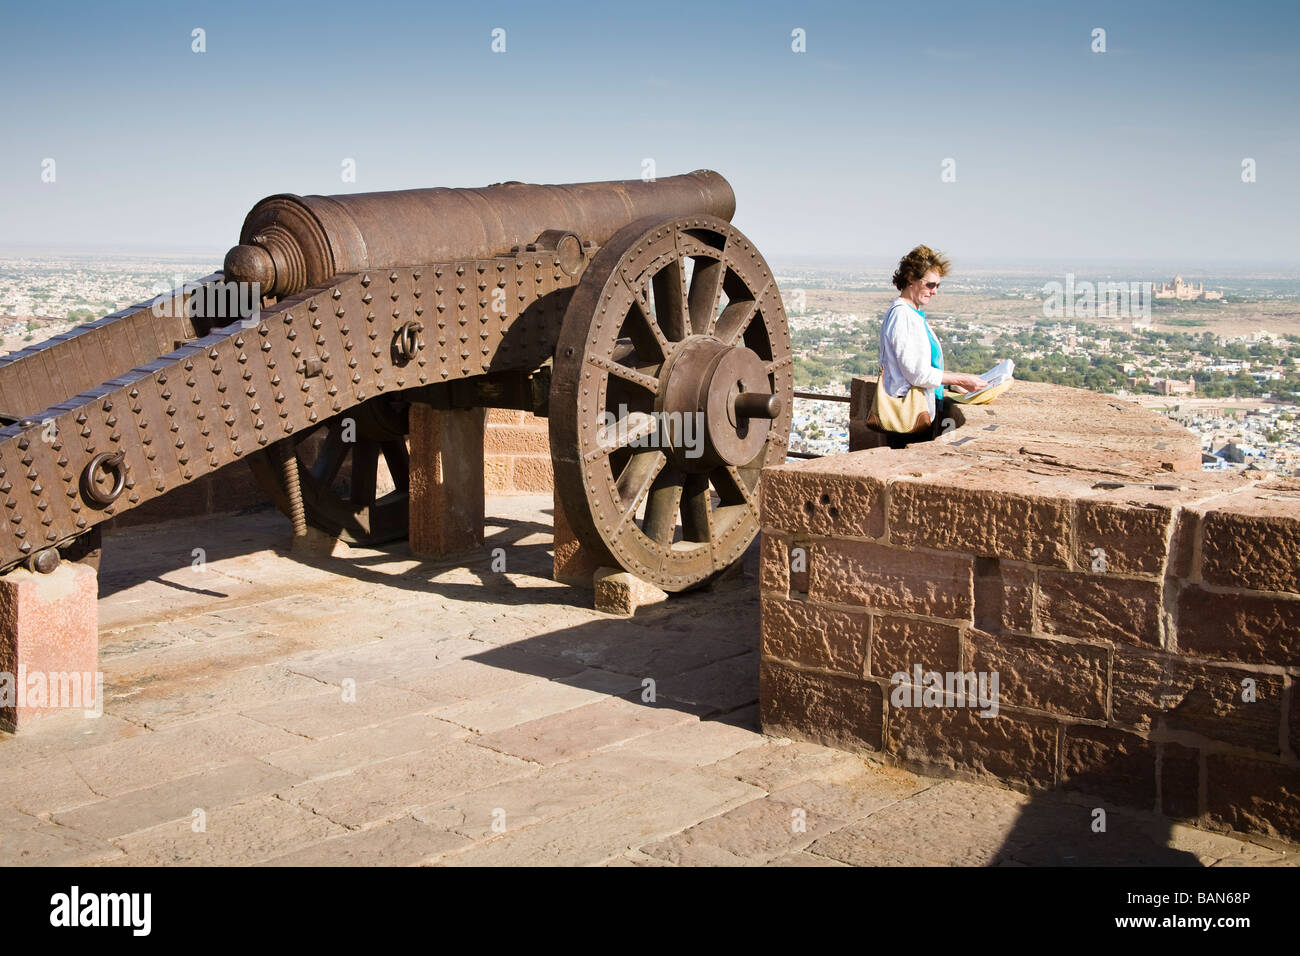 Tourist standing beside a cannon at Mehrangarh Fort, Jodhpur, Rajasthan, India - Stock Image